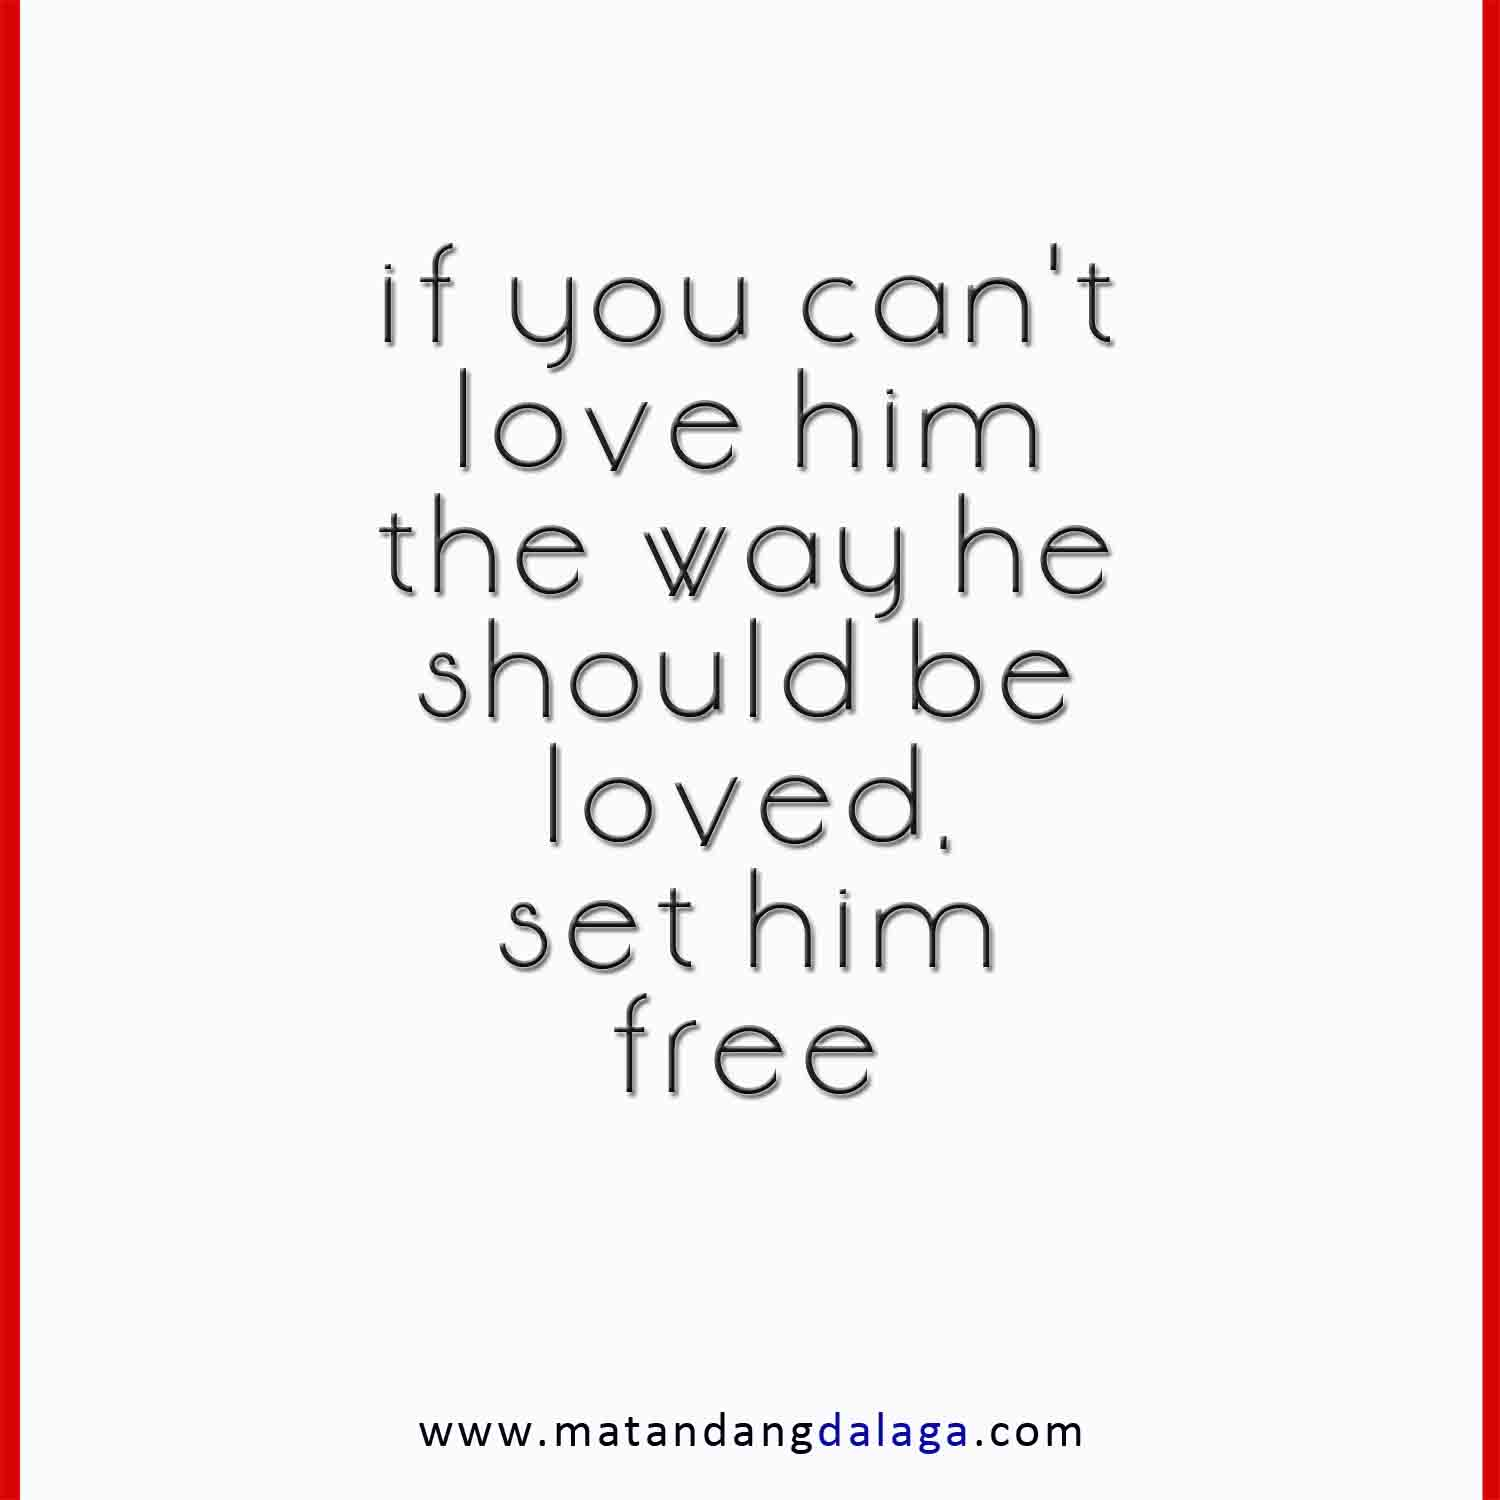 Free Love Quotes For Him Love Quotes Setting Free If You Really Love Something Set It Free